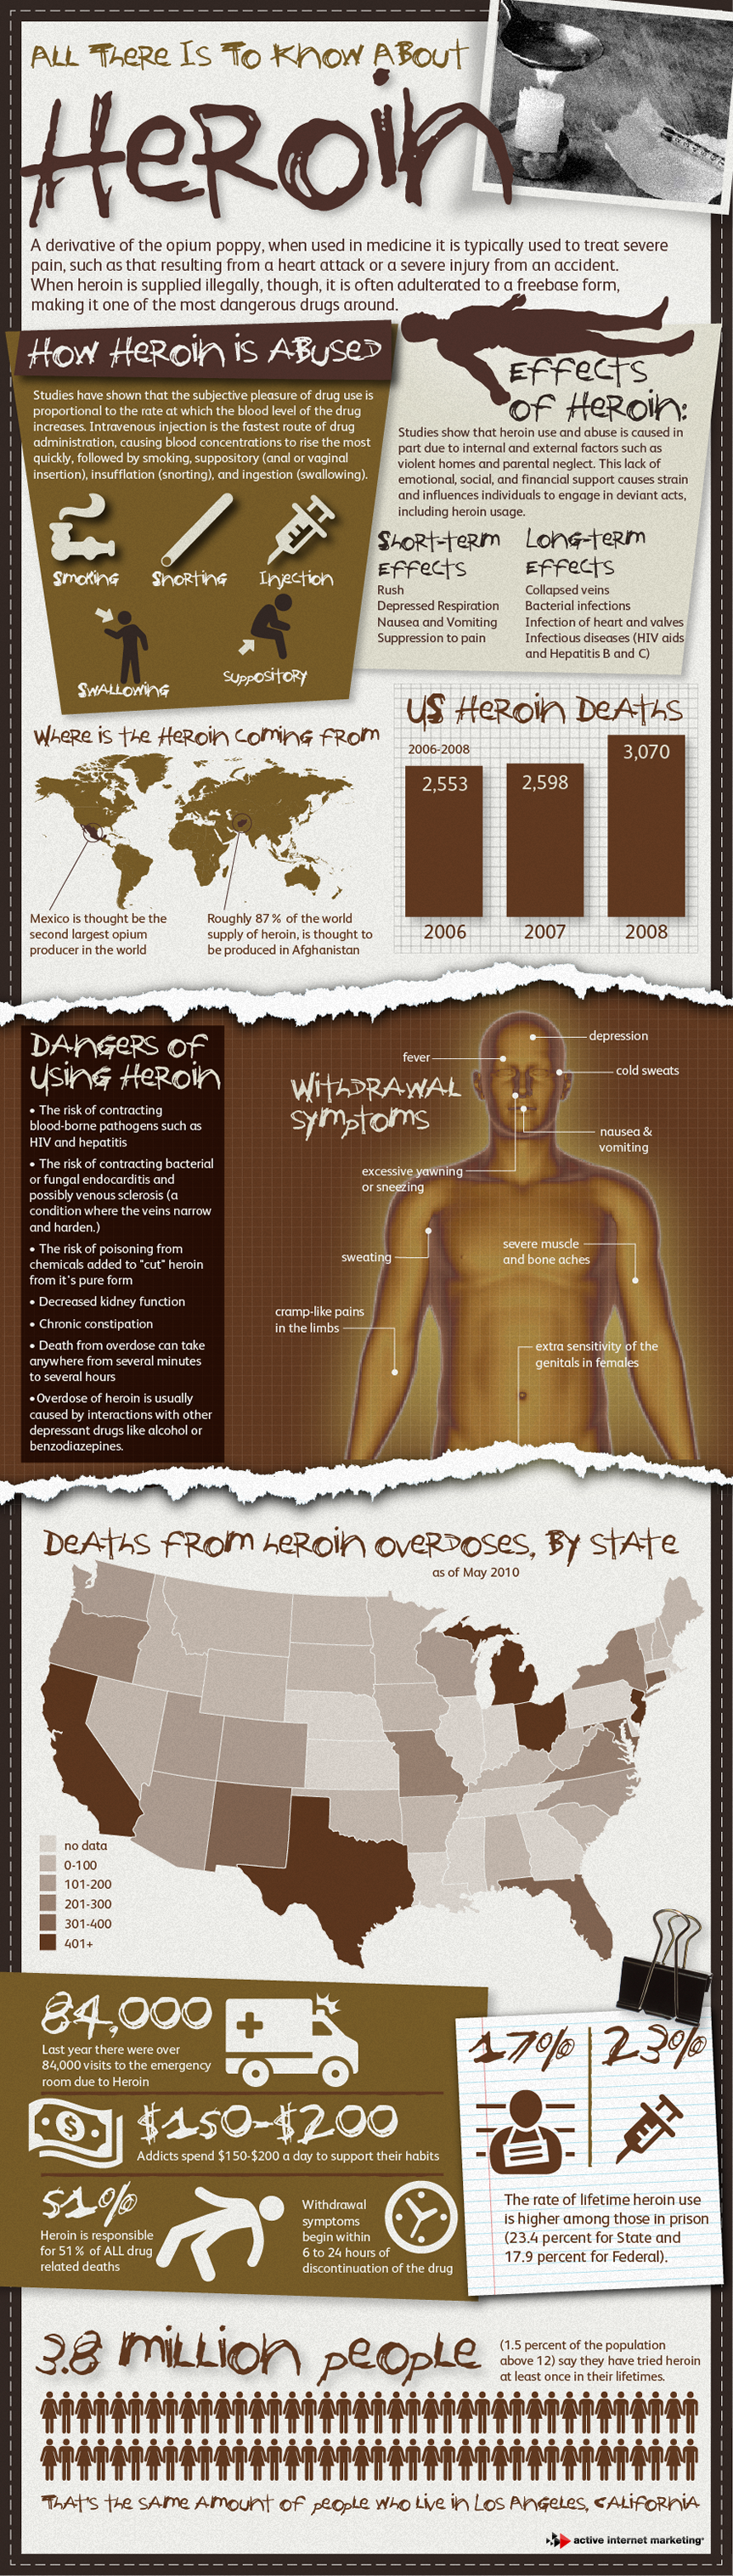 All You Need To Know About Heroin - An Infographic from Infographics Showcase